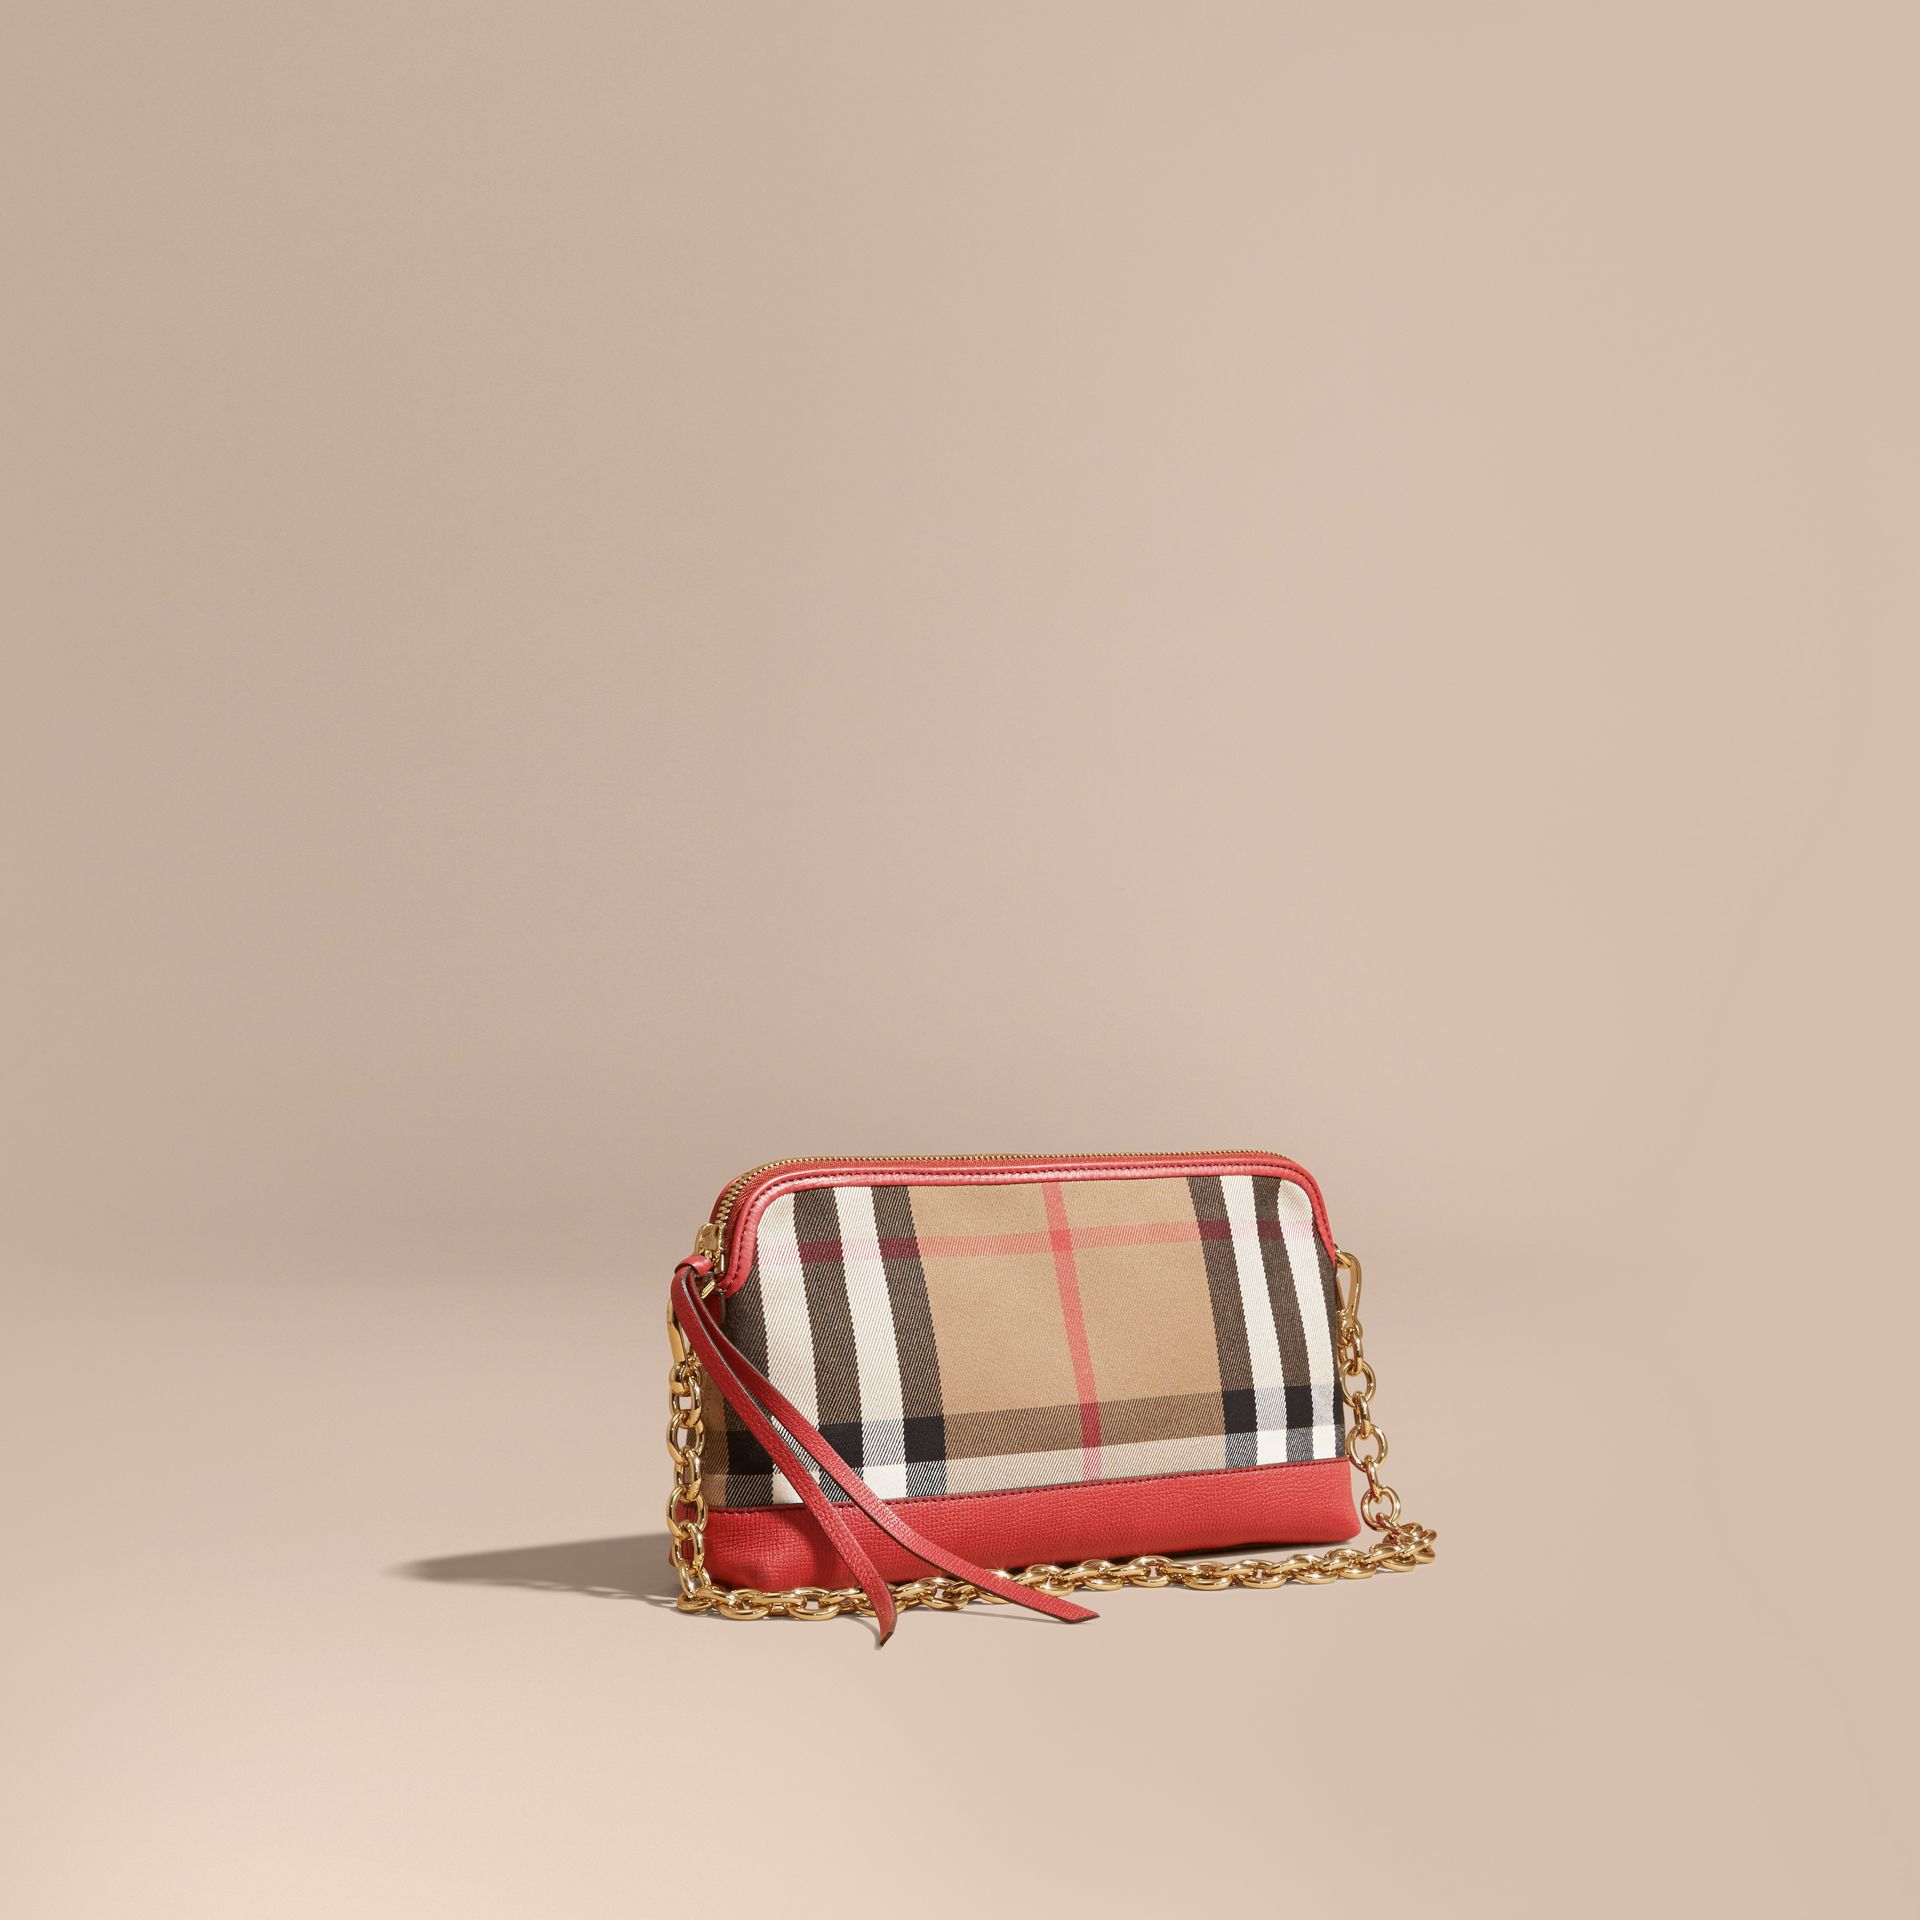 House Check and Leather Clutch Bag Russet Red - gallery image 1